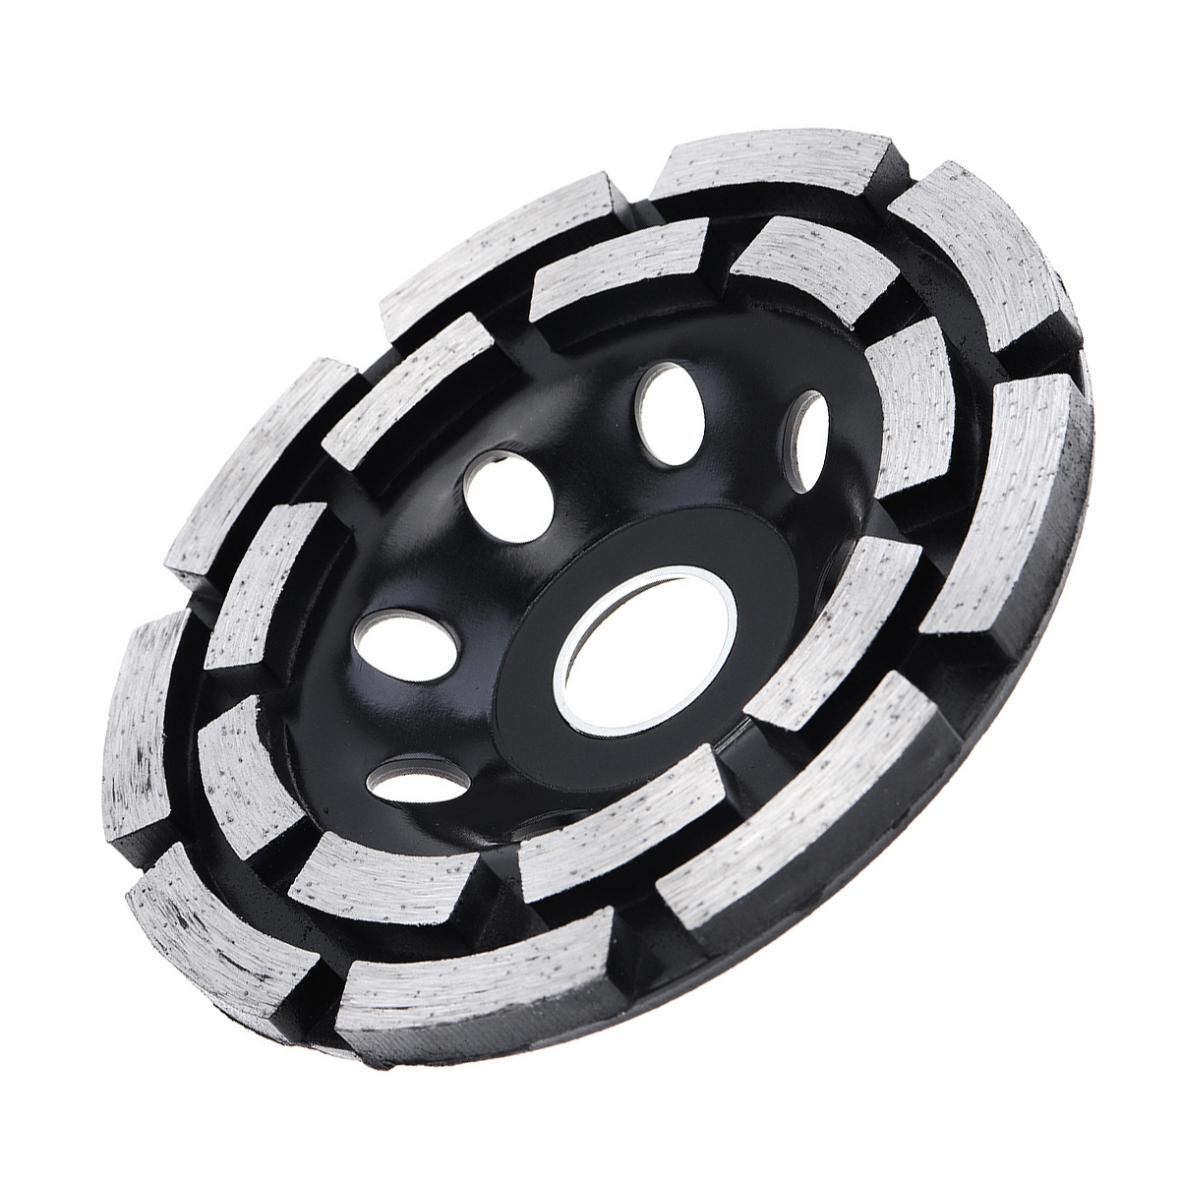 Electric 115mm Diamond Double-row Grinding Wheel Cutting Saw Blade w// 22mm Hole